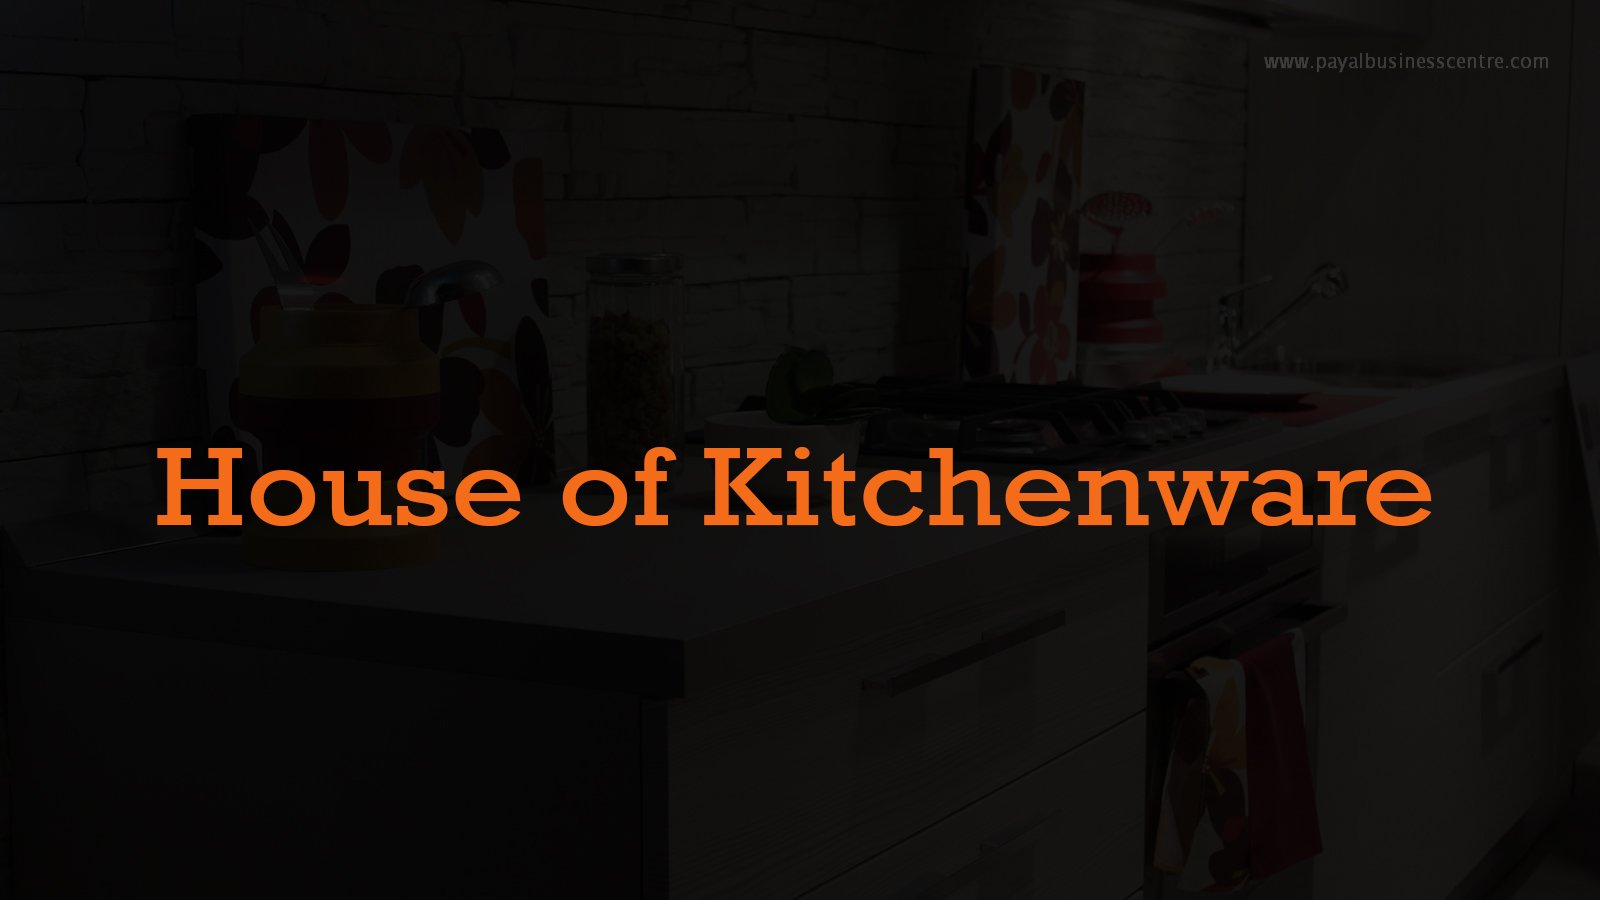 House of Kitchenware